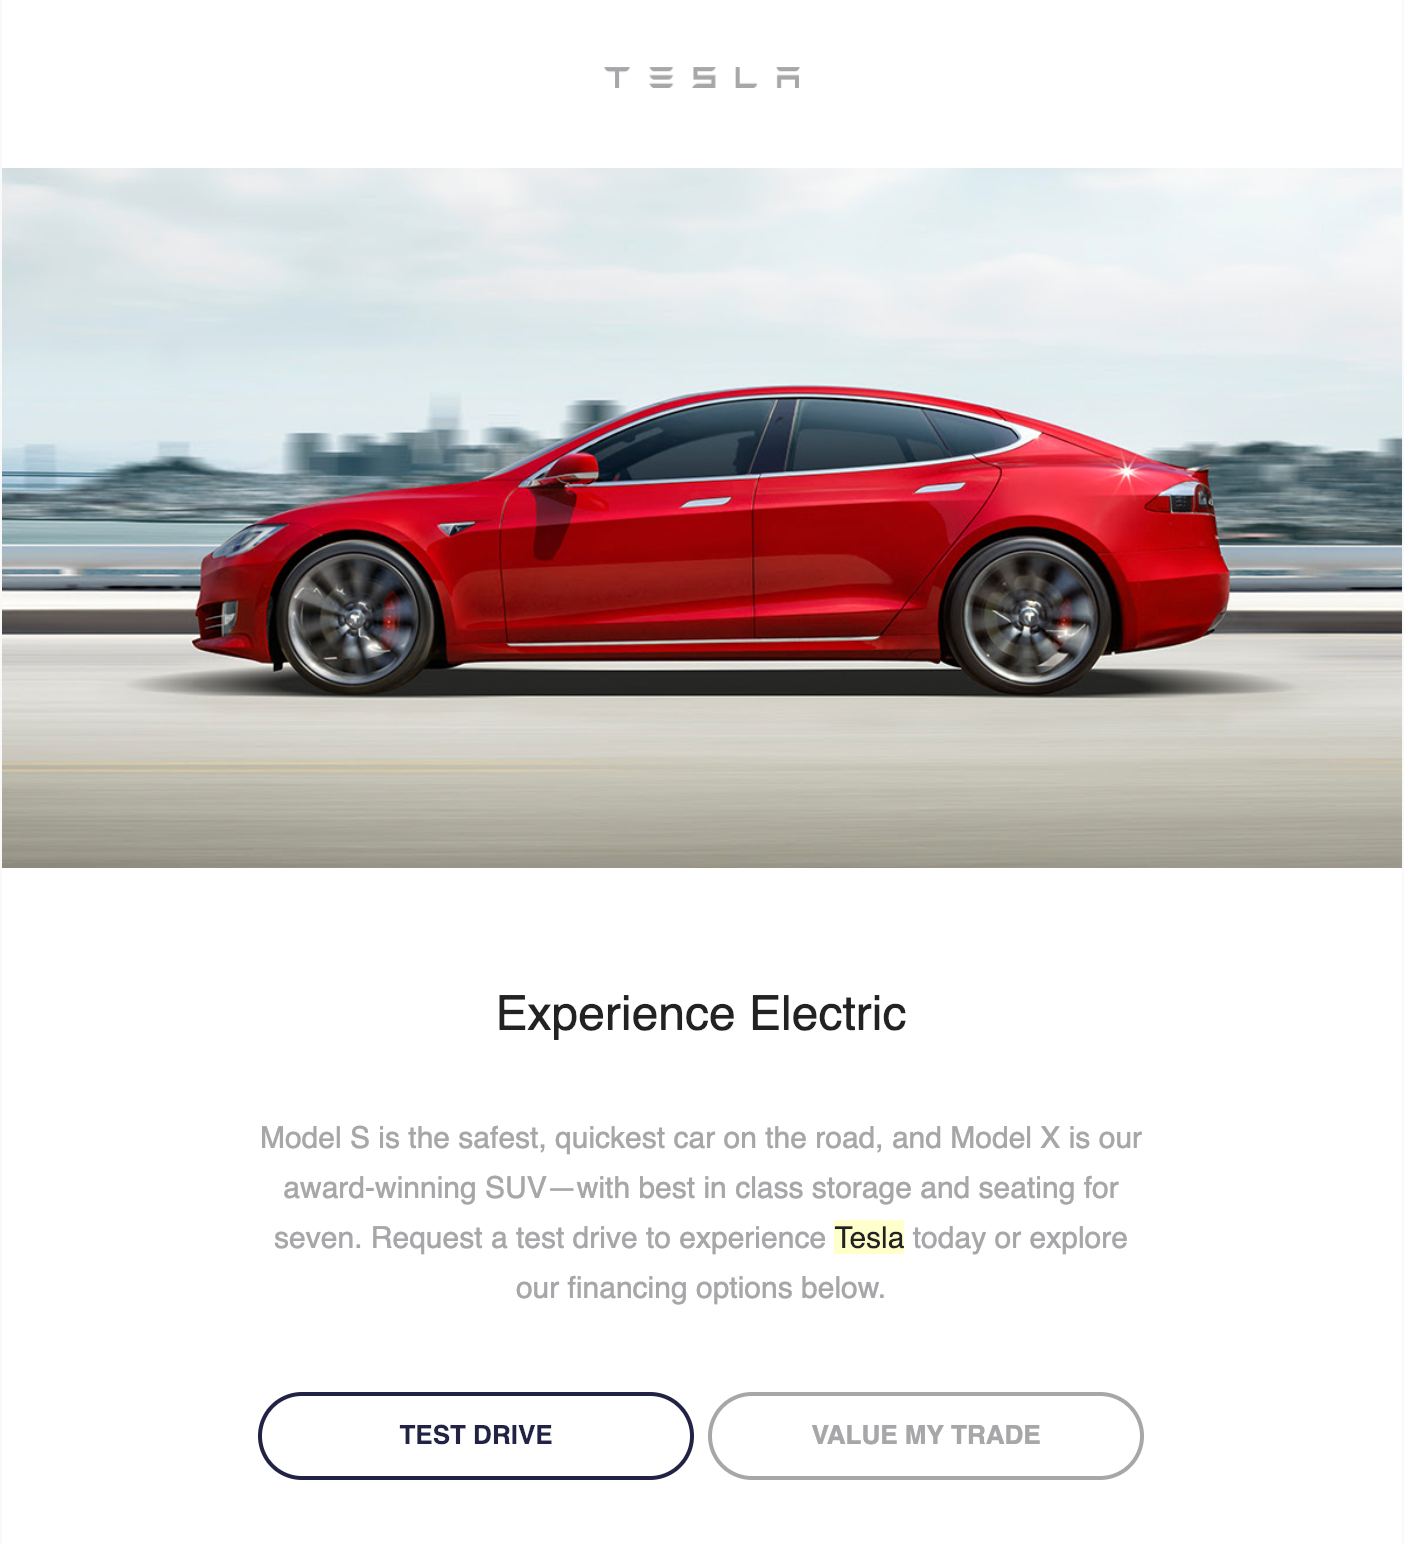 Tesla Updates 1 Billion Miles on Autopilot ian jacob searchandbefound com au Search amp Be Found Mail